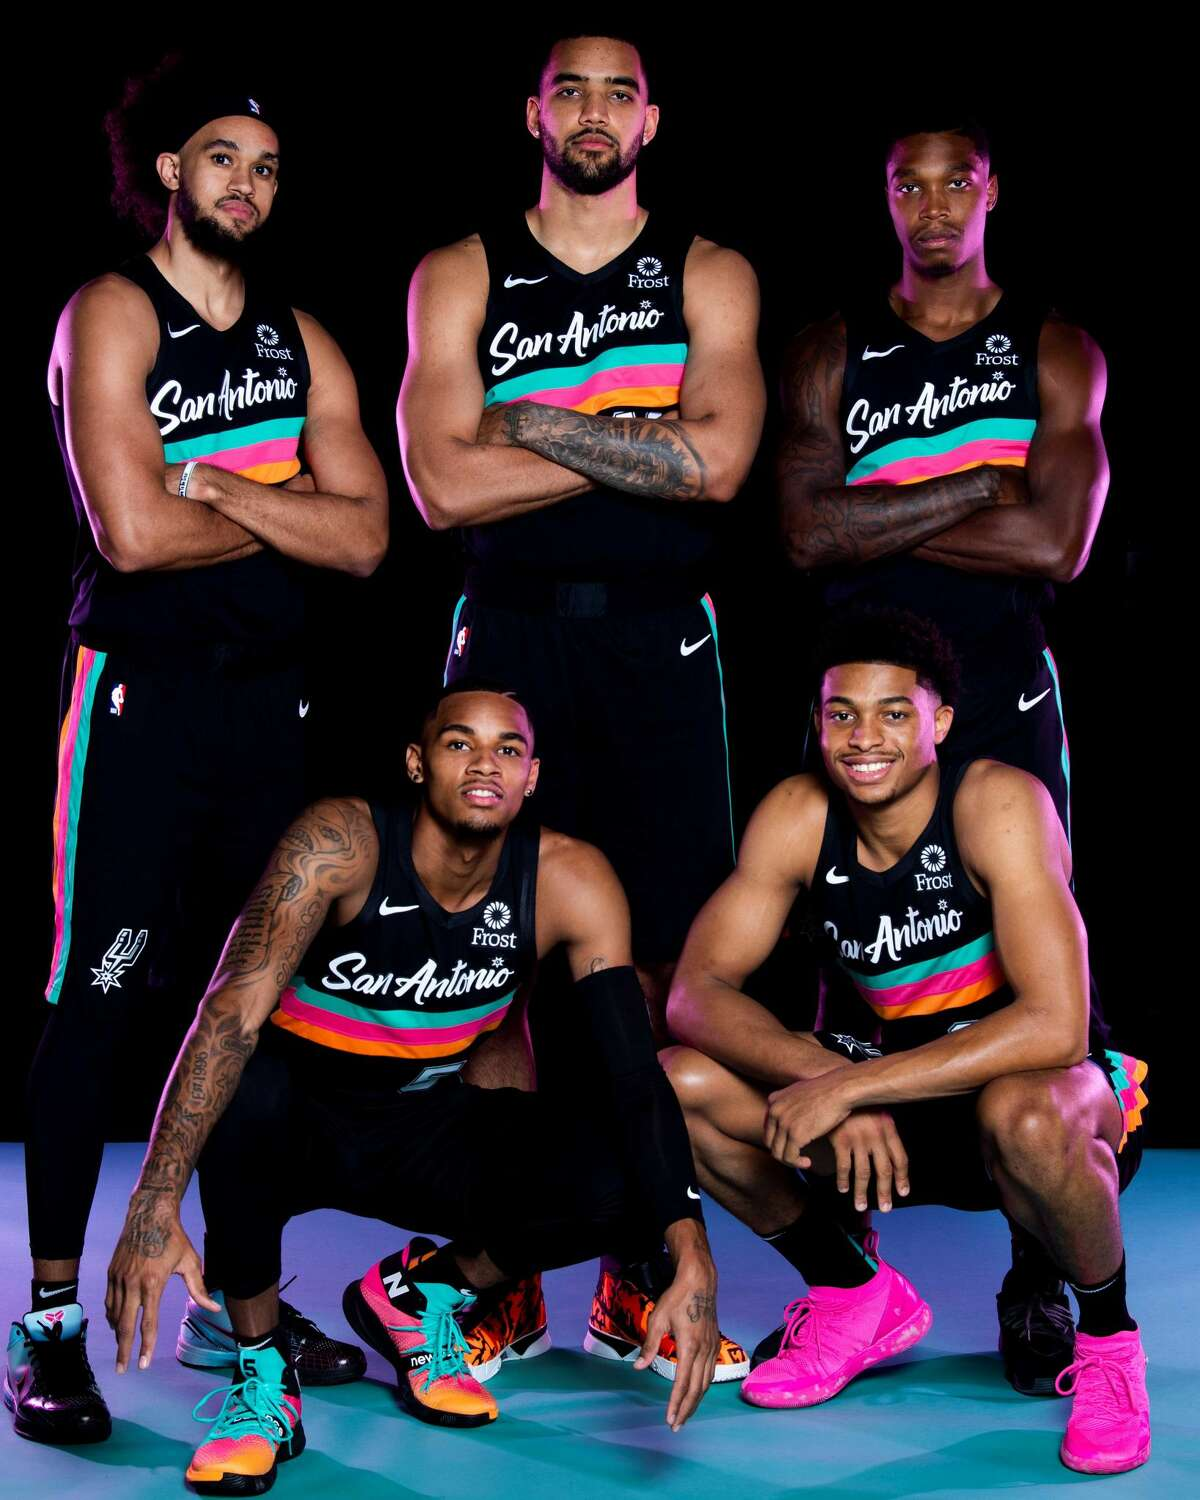 The Nike City Edition alternate uniforms for the Spurs dropped Friday with much fanfare. The fan base has spent the last few years asking the team for the old school aqua, orange and pink aesthetic. Nike delivered with a look that is similar to the team's game warmups from the 1989-90 season to 1996-97 season.